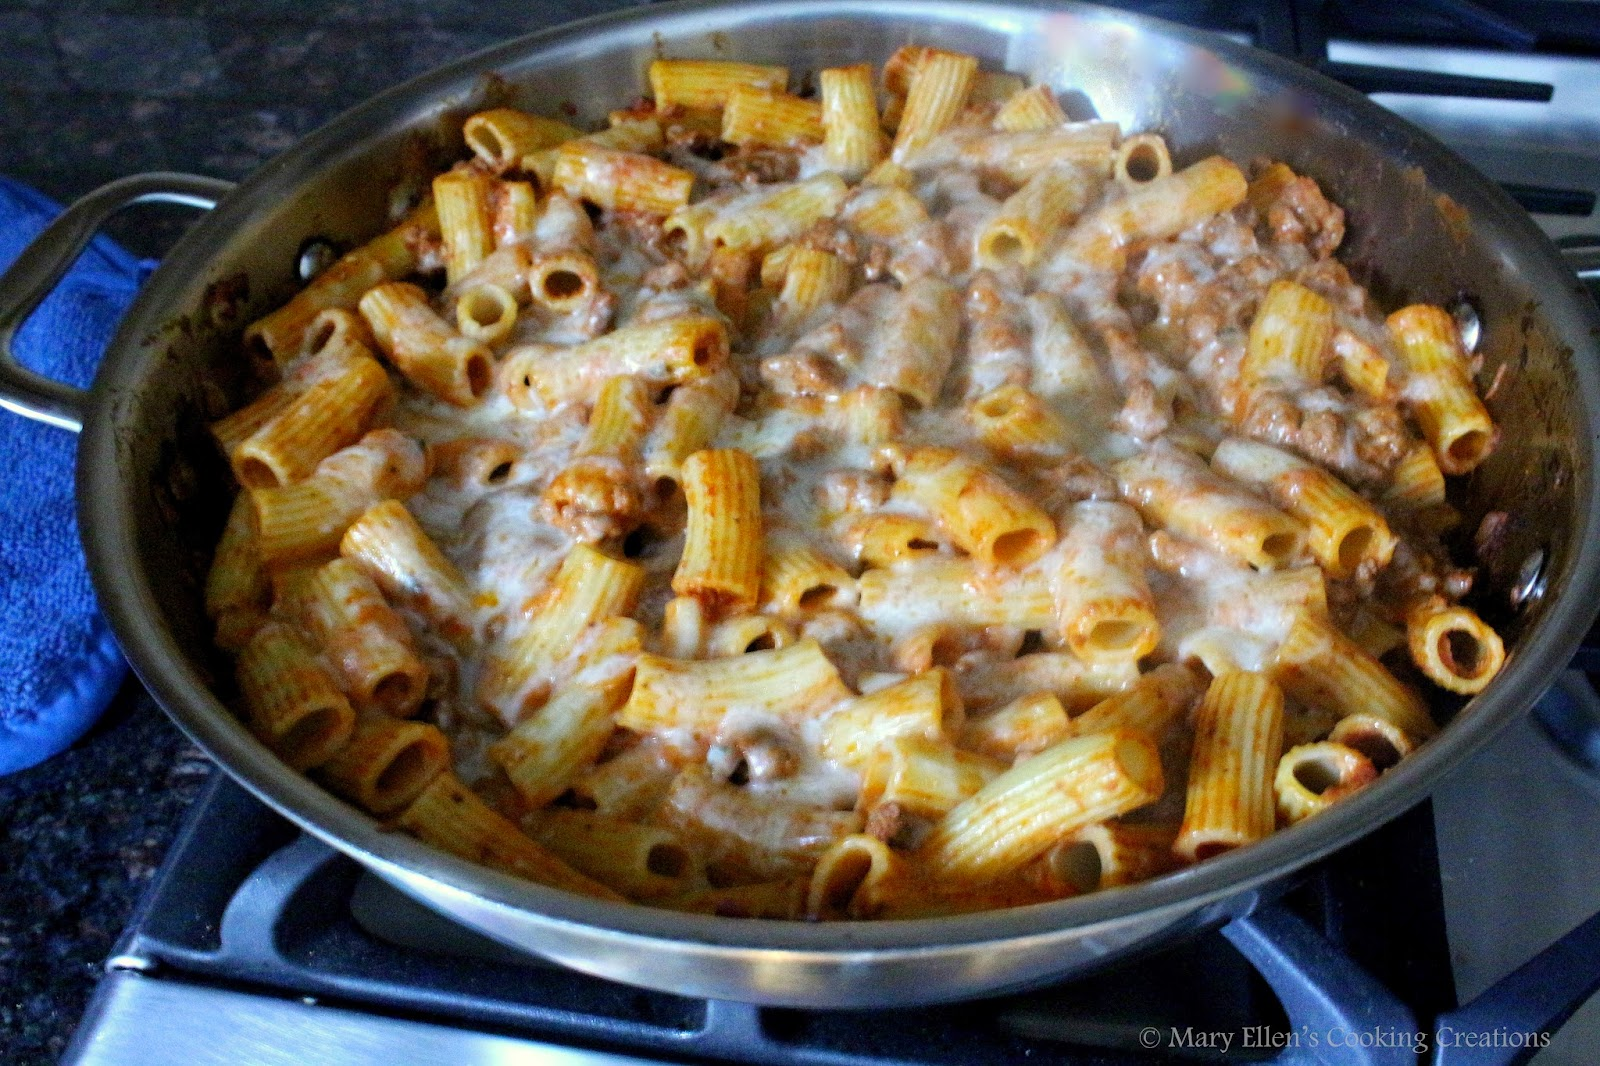 Mary Ellen's Cooking Creations: Skillet Baked Rigatoni